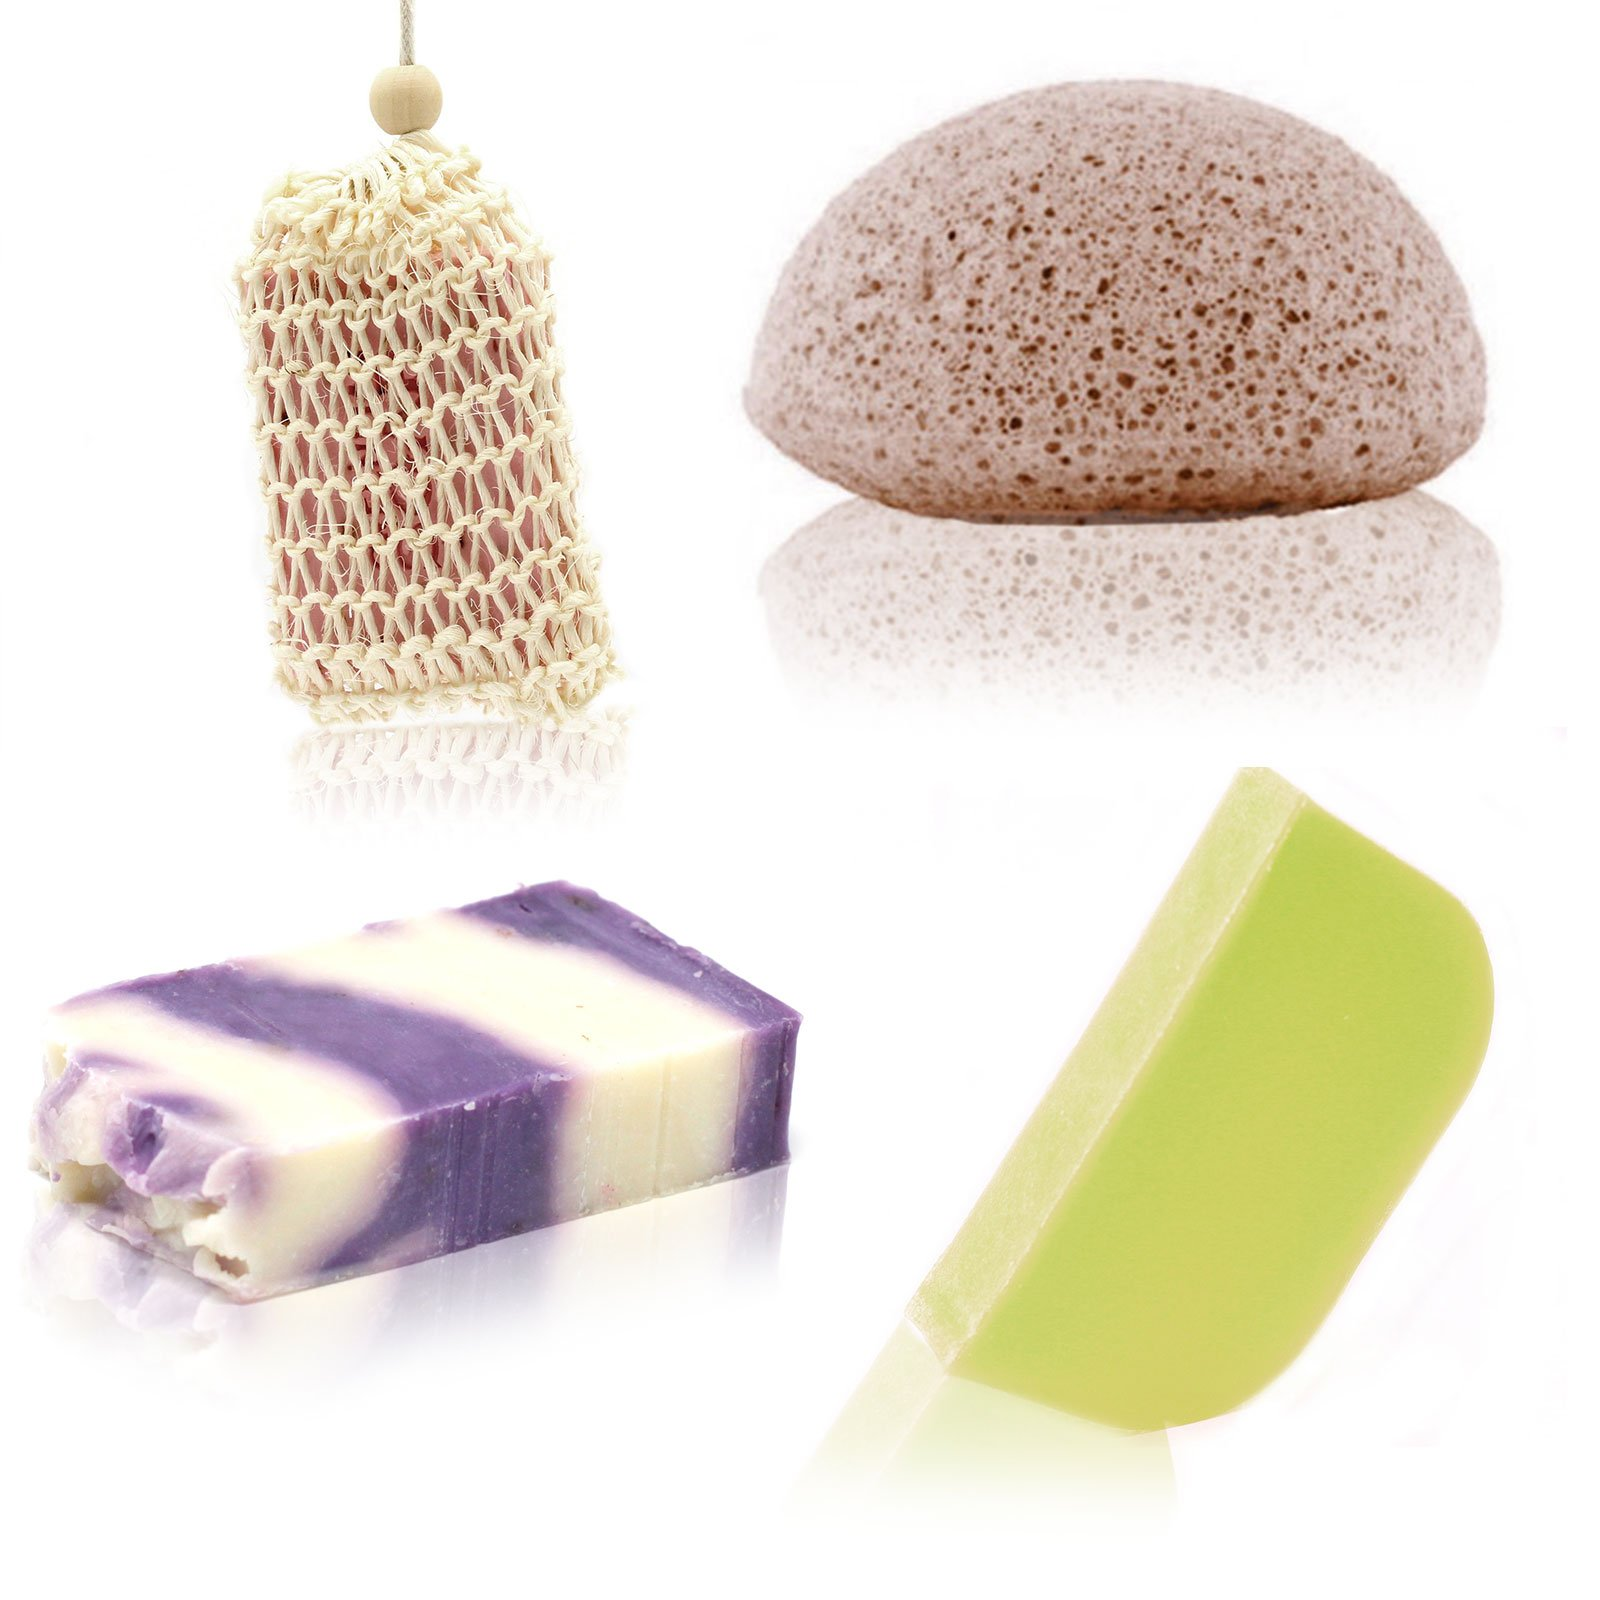 Soap-Solid-Shampoo-And-Sponge-Treat-Box